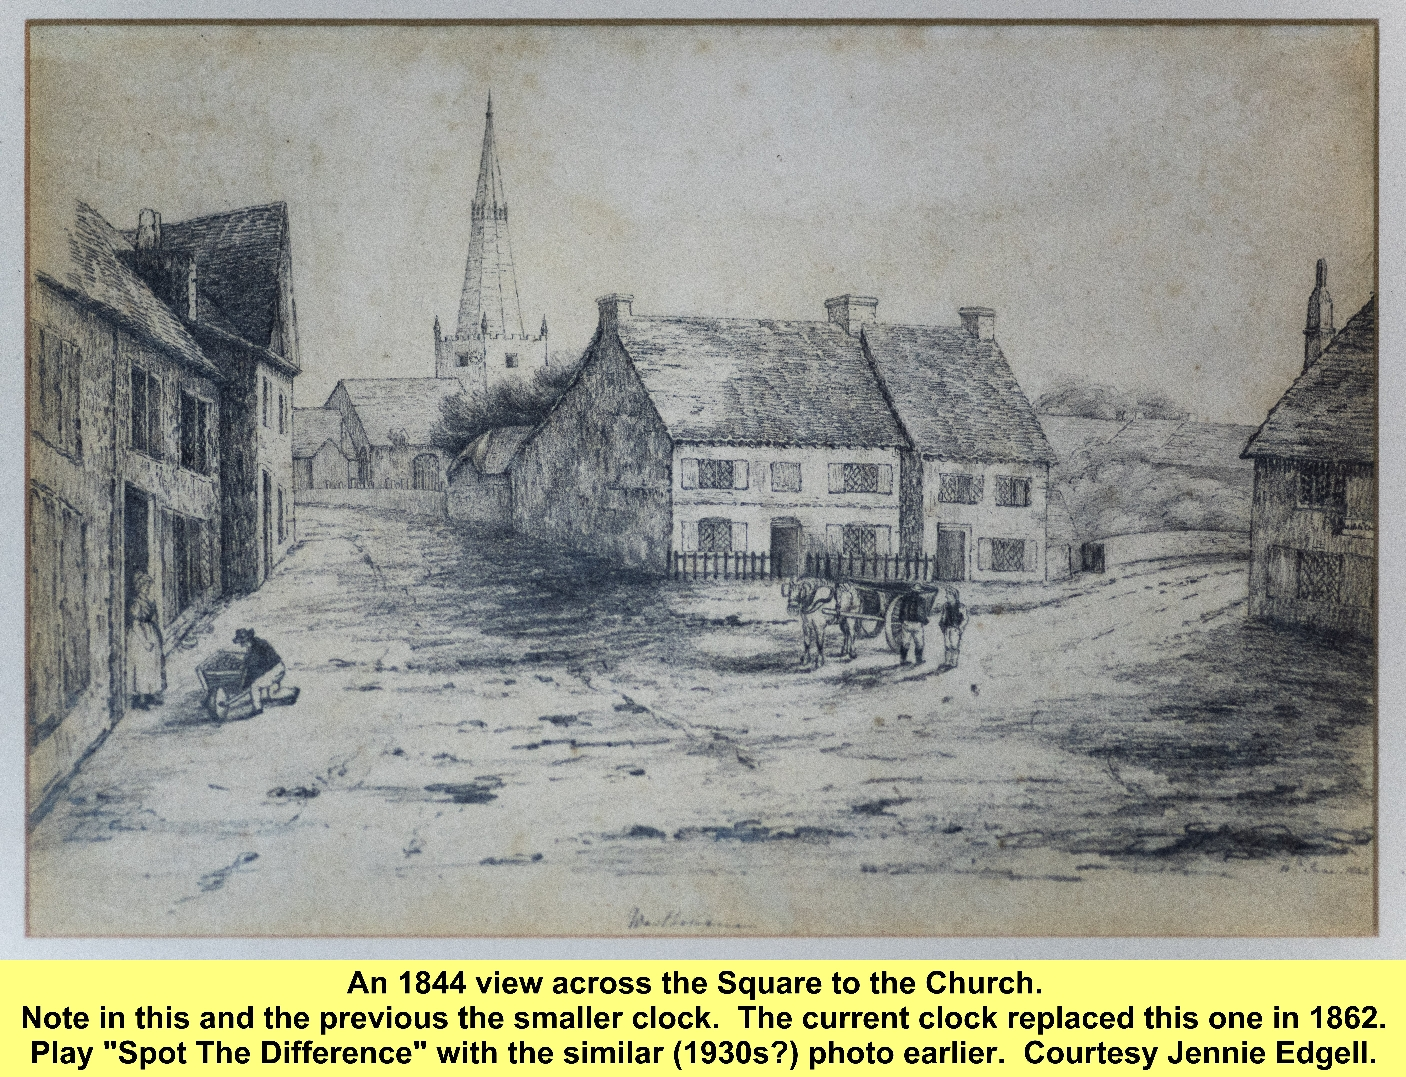 WESTBOURNE HISTORY PHOTO, SQUARE, LEDGER, CHURCH TOWER, CLOCK, 1862